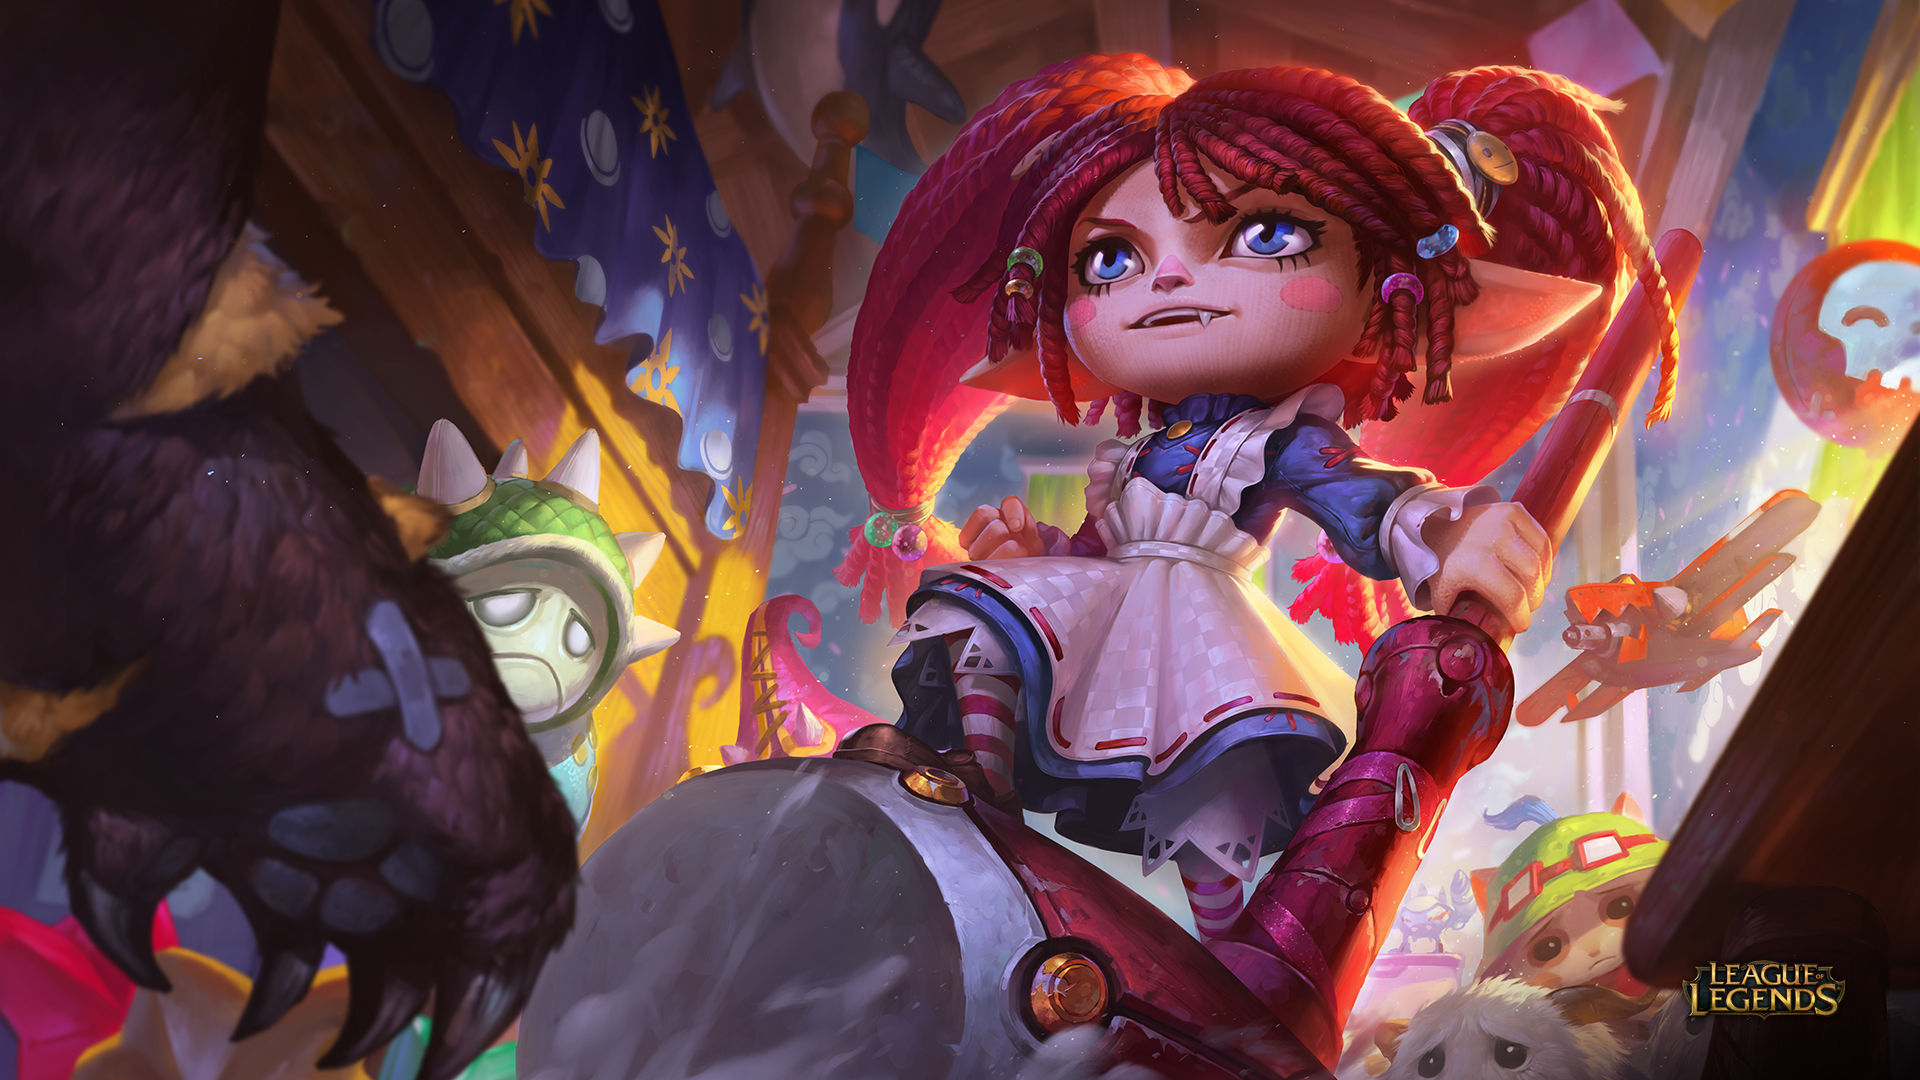 League of Legends Ragdoll Poppy splash art